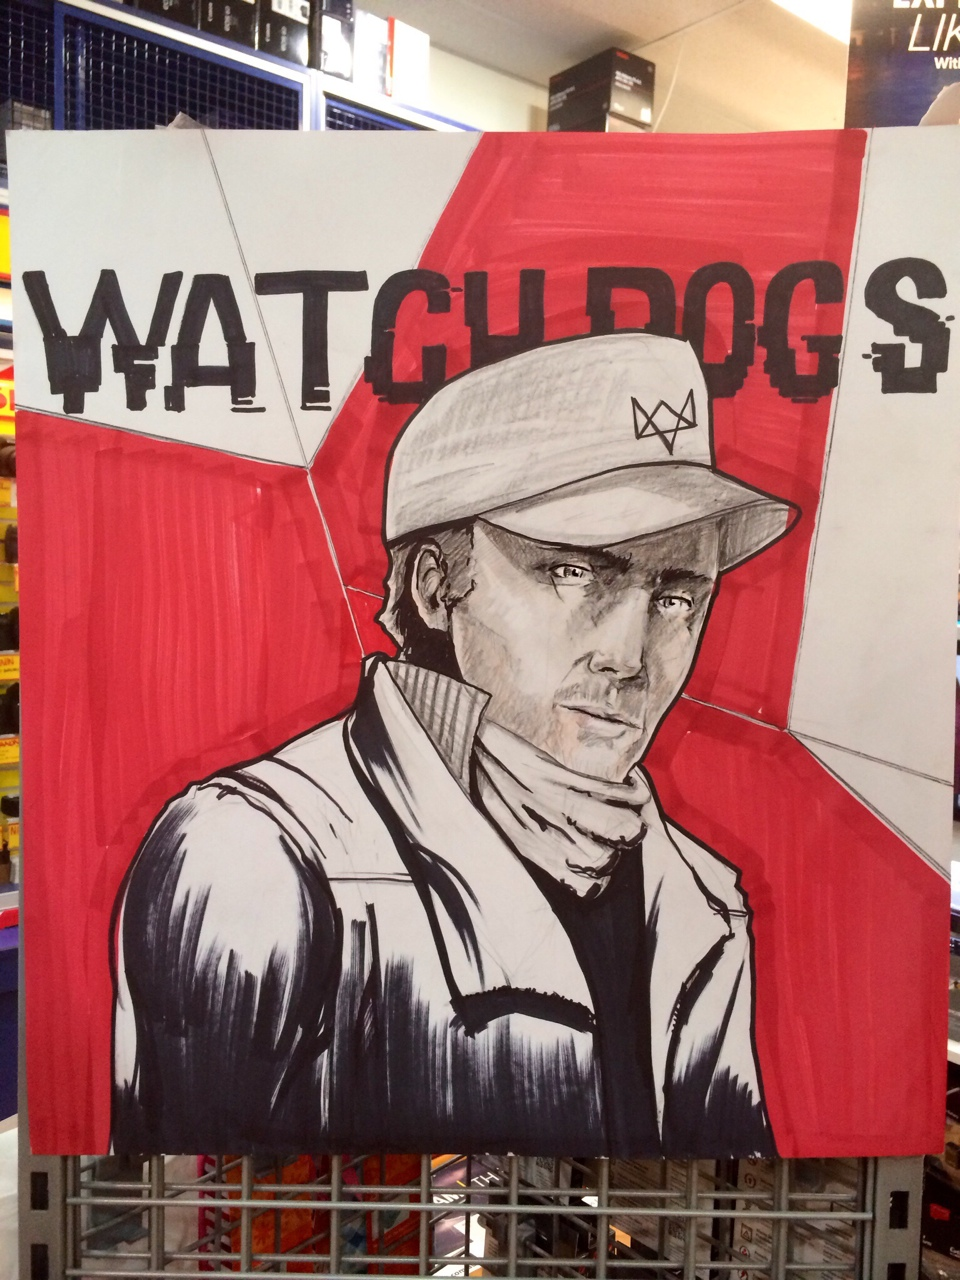 87378040501 - watchdogs had no reference for the face because.jpg